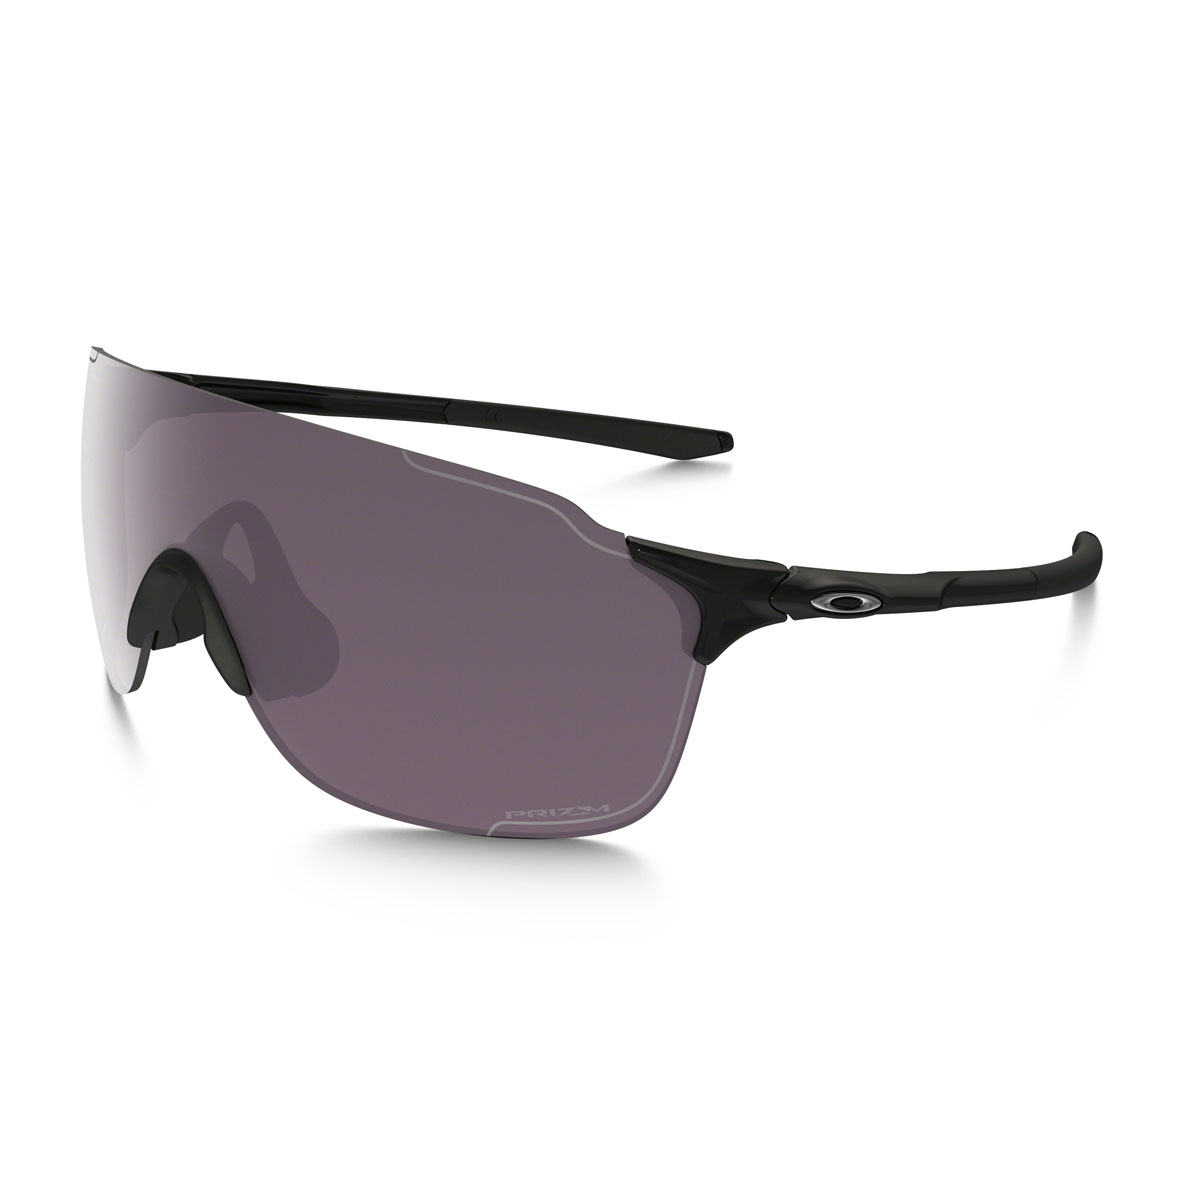 fb36ae5eae4 Image of Oakley EVZero Stride Prizm Daily Polarized Sunglasses - Polished  Black Prizm Daily Polarized